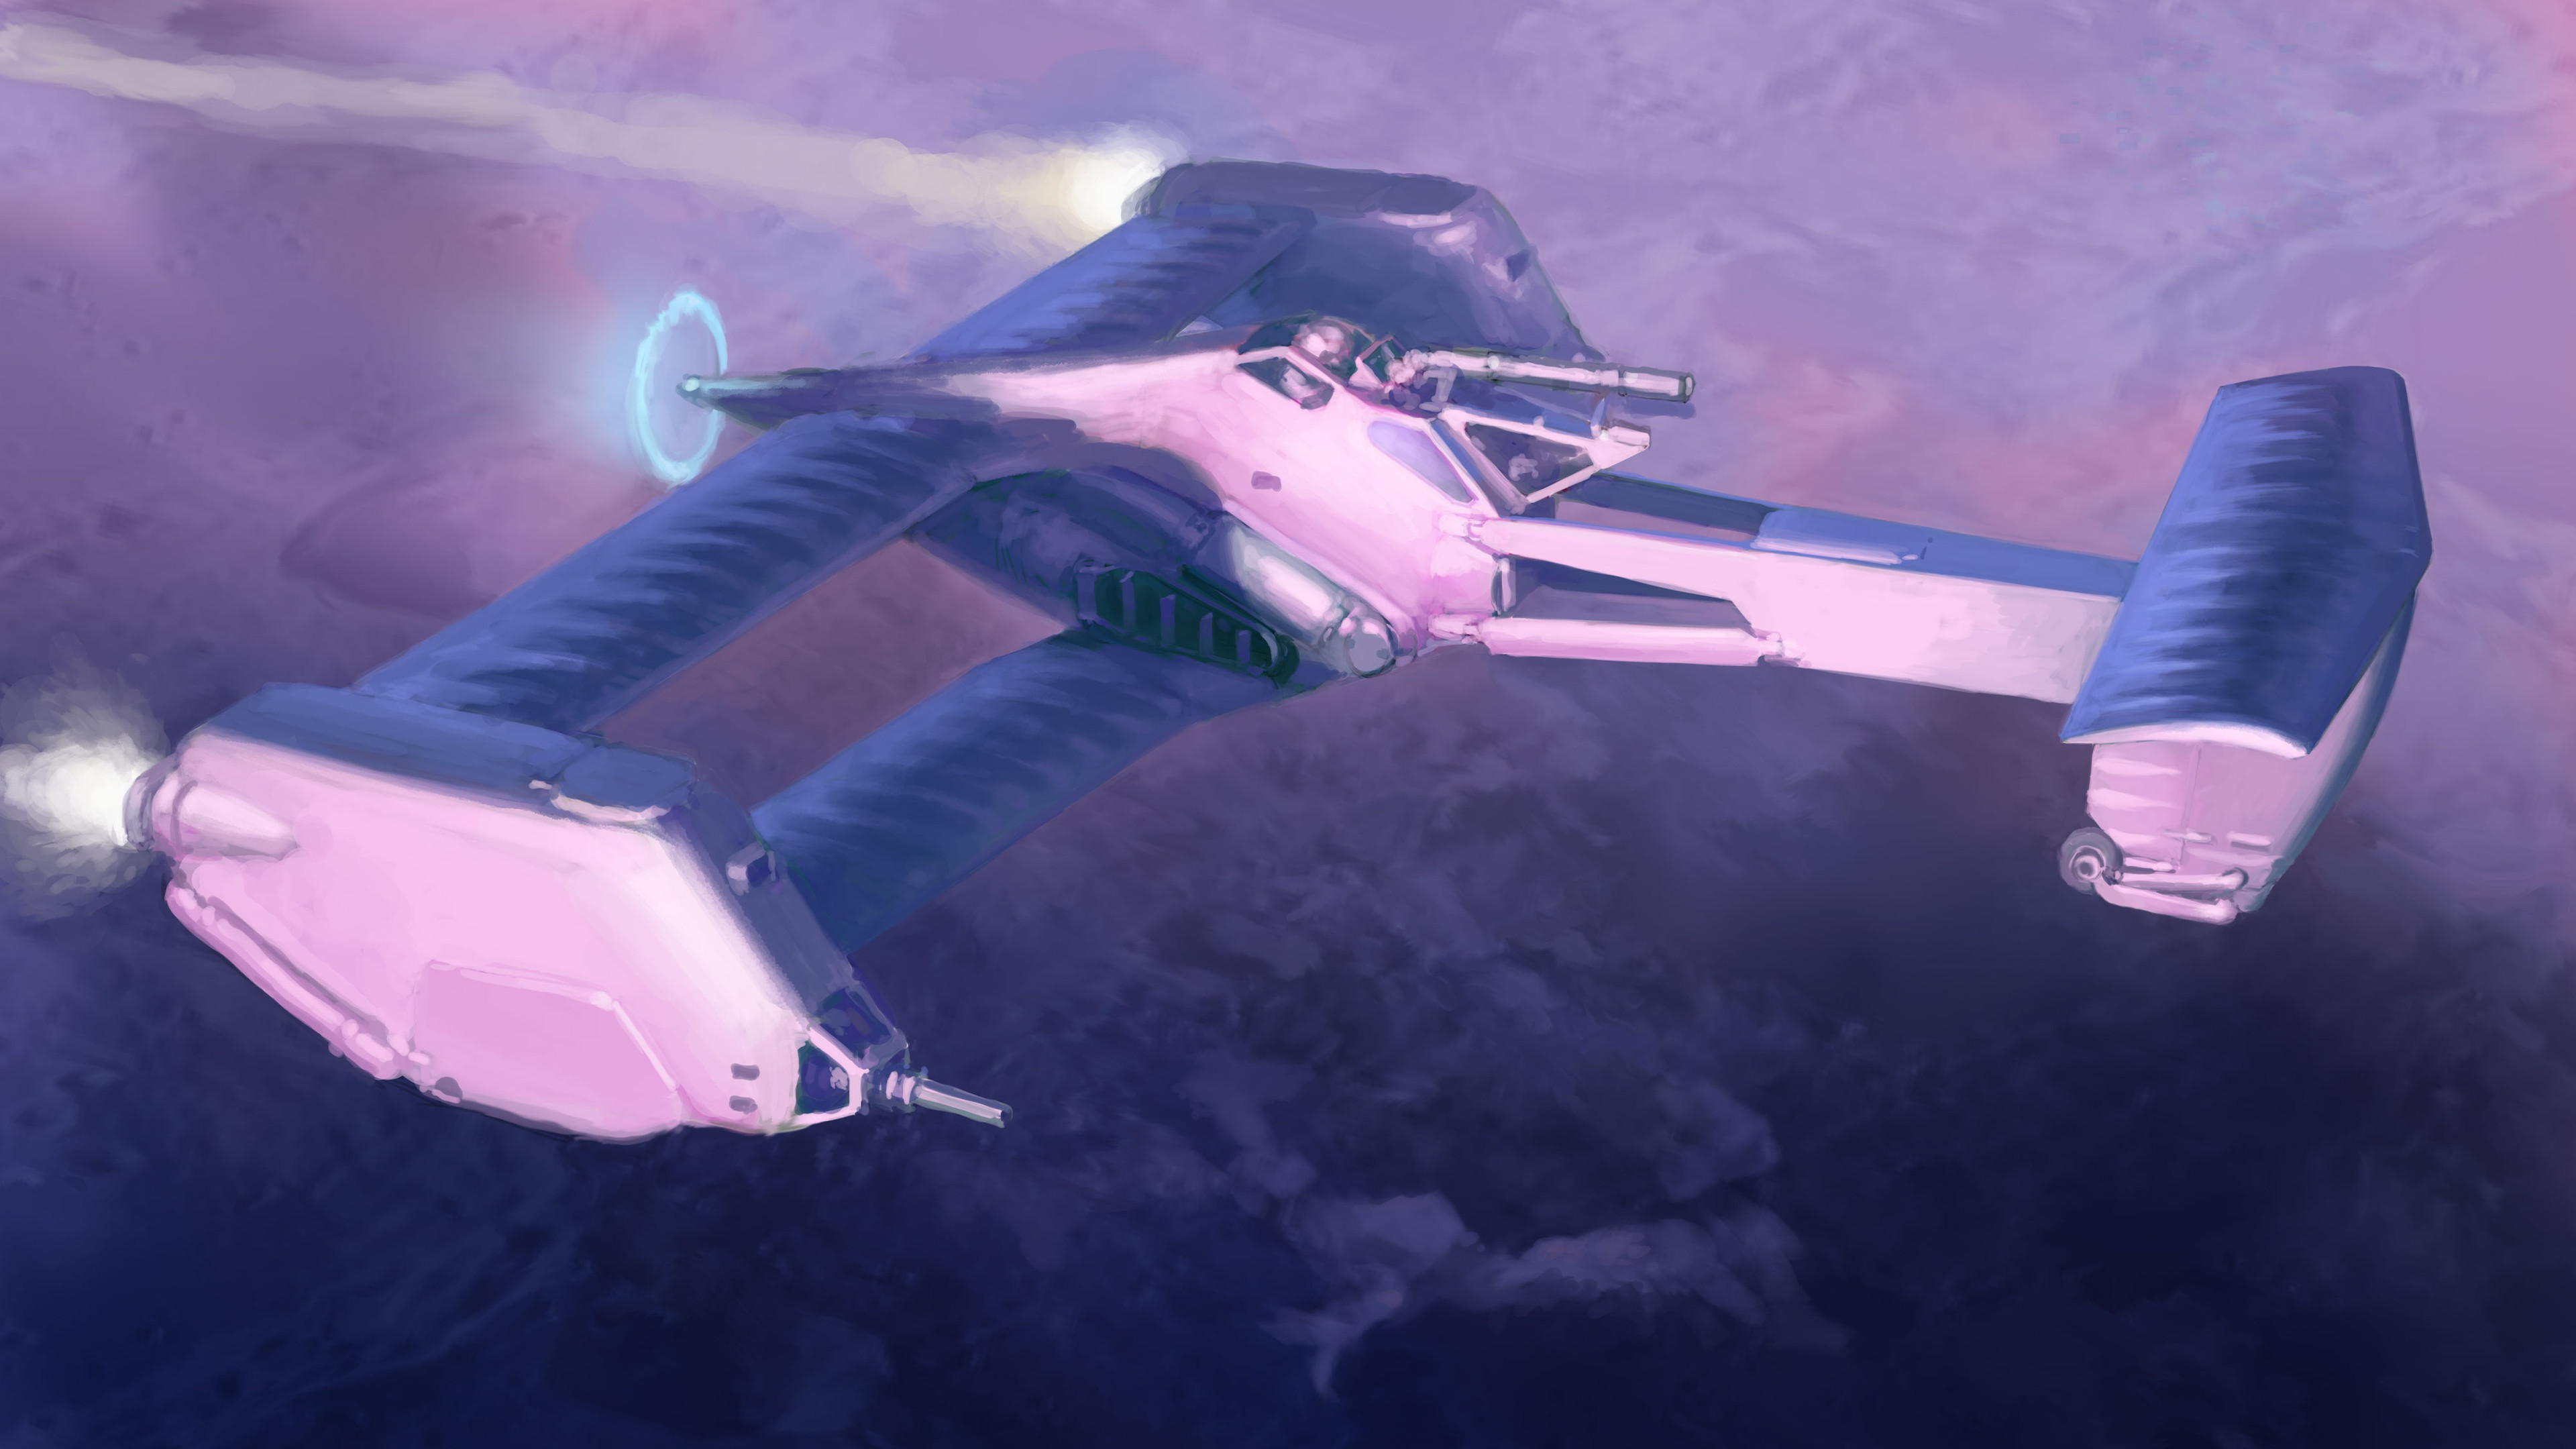 Main art, which will serve as an anchor for the book chapter.